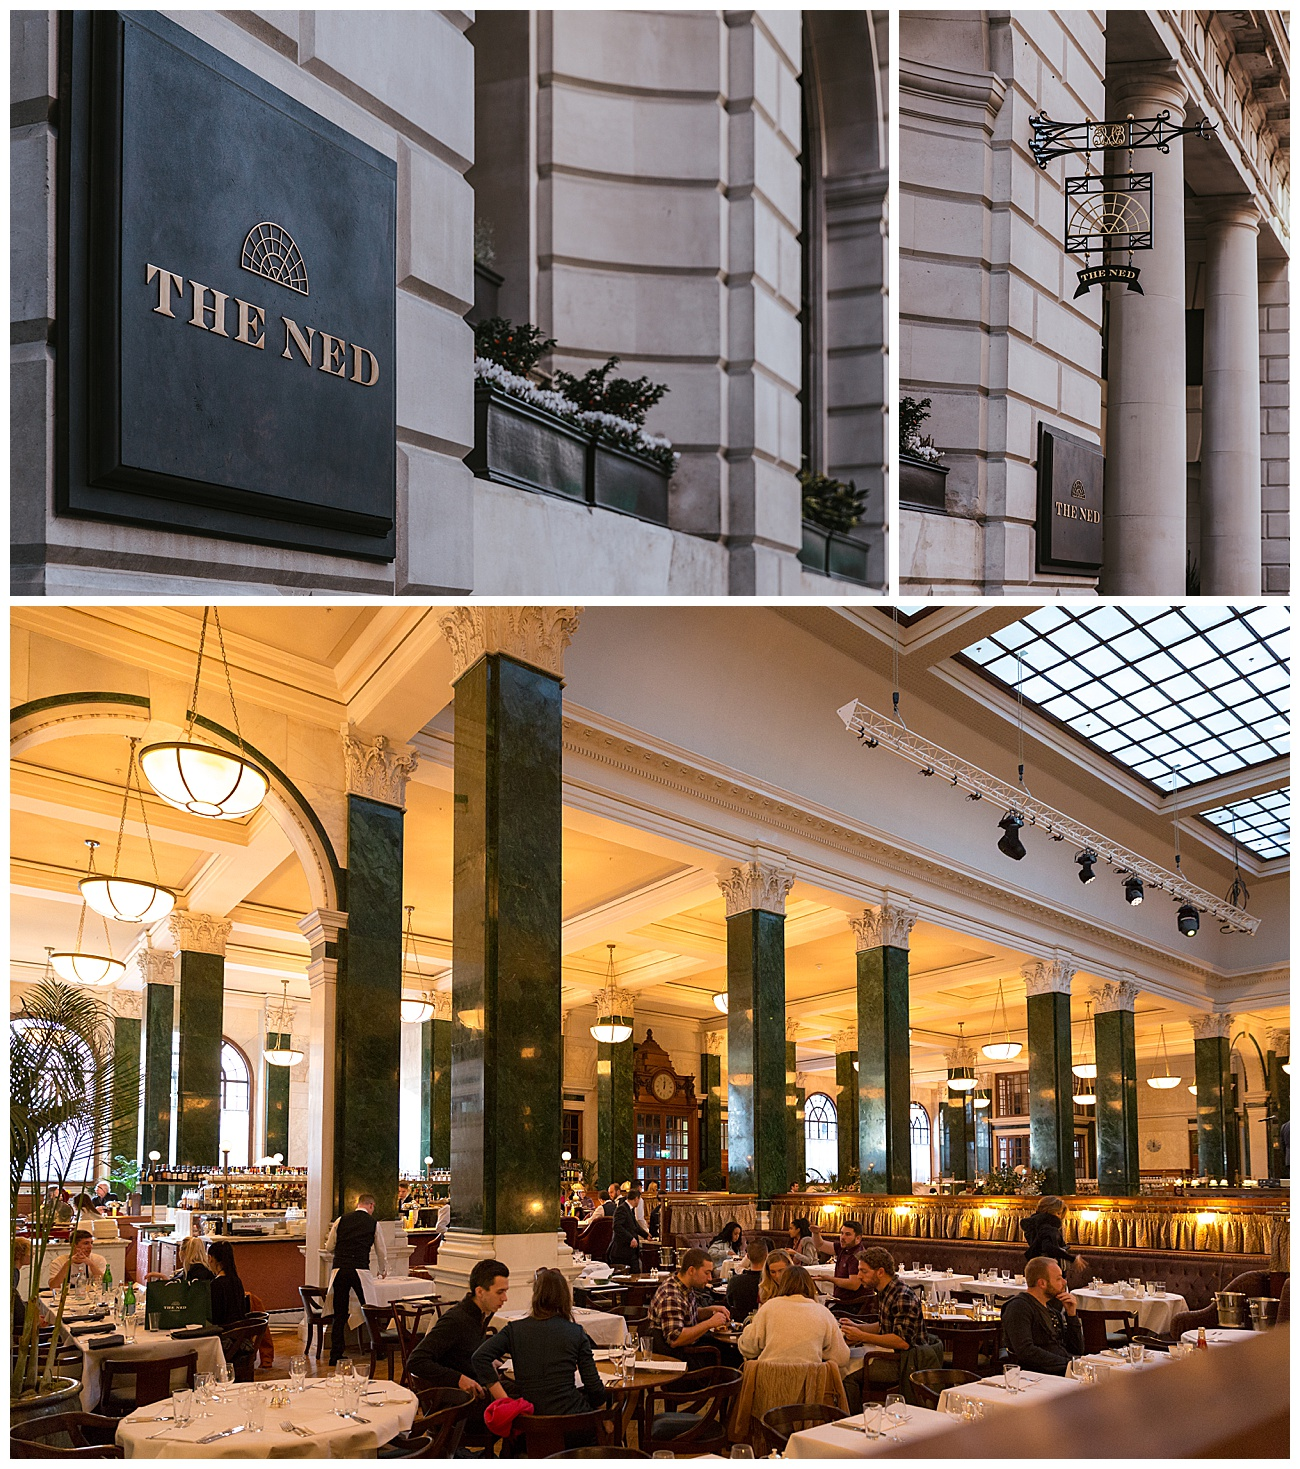 The Ned 5 star hotel in London. Interior and exterior photographs